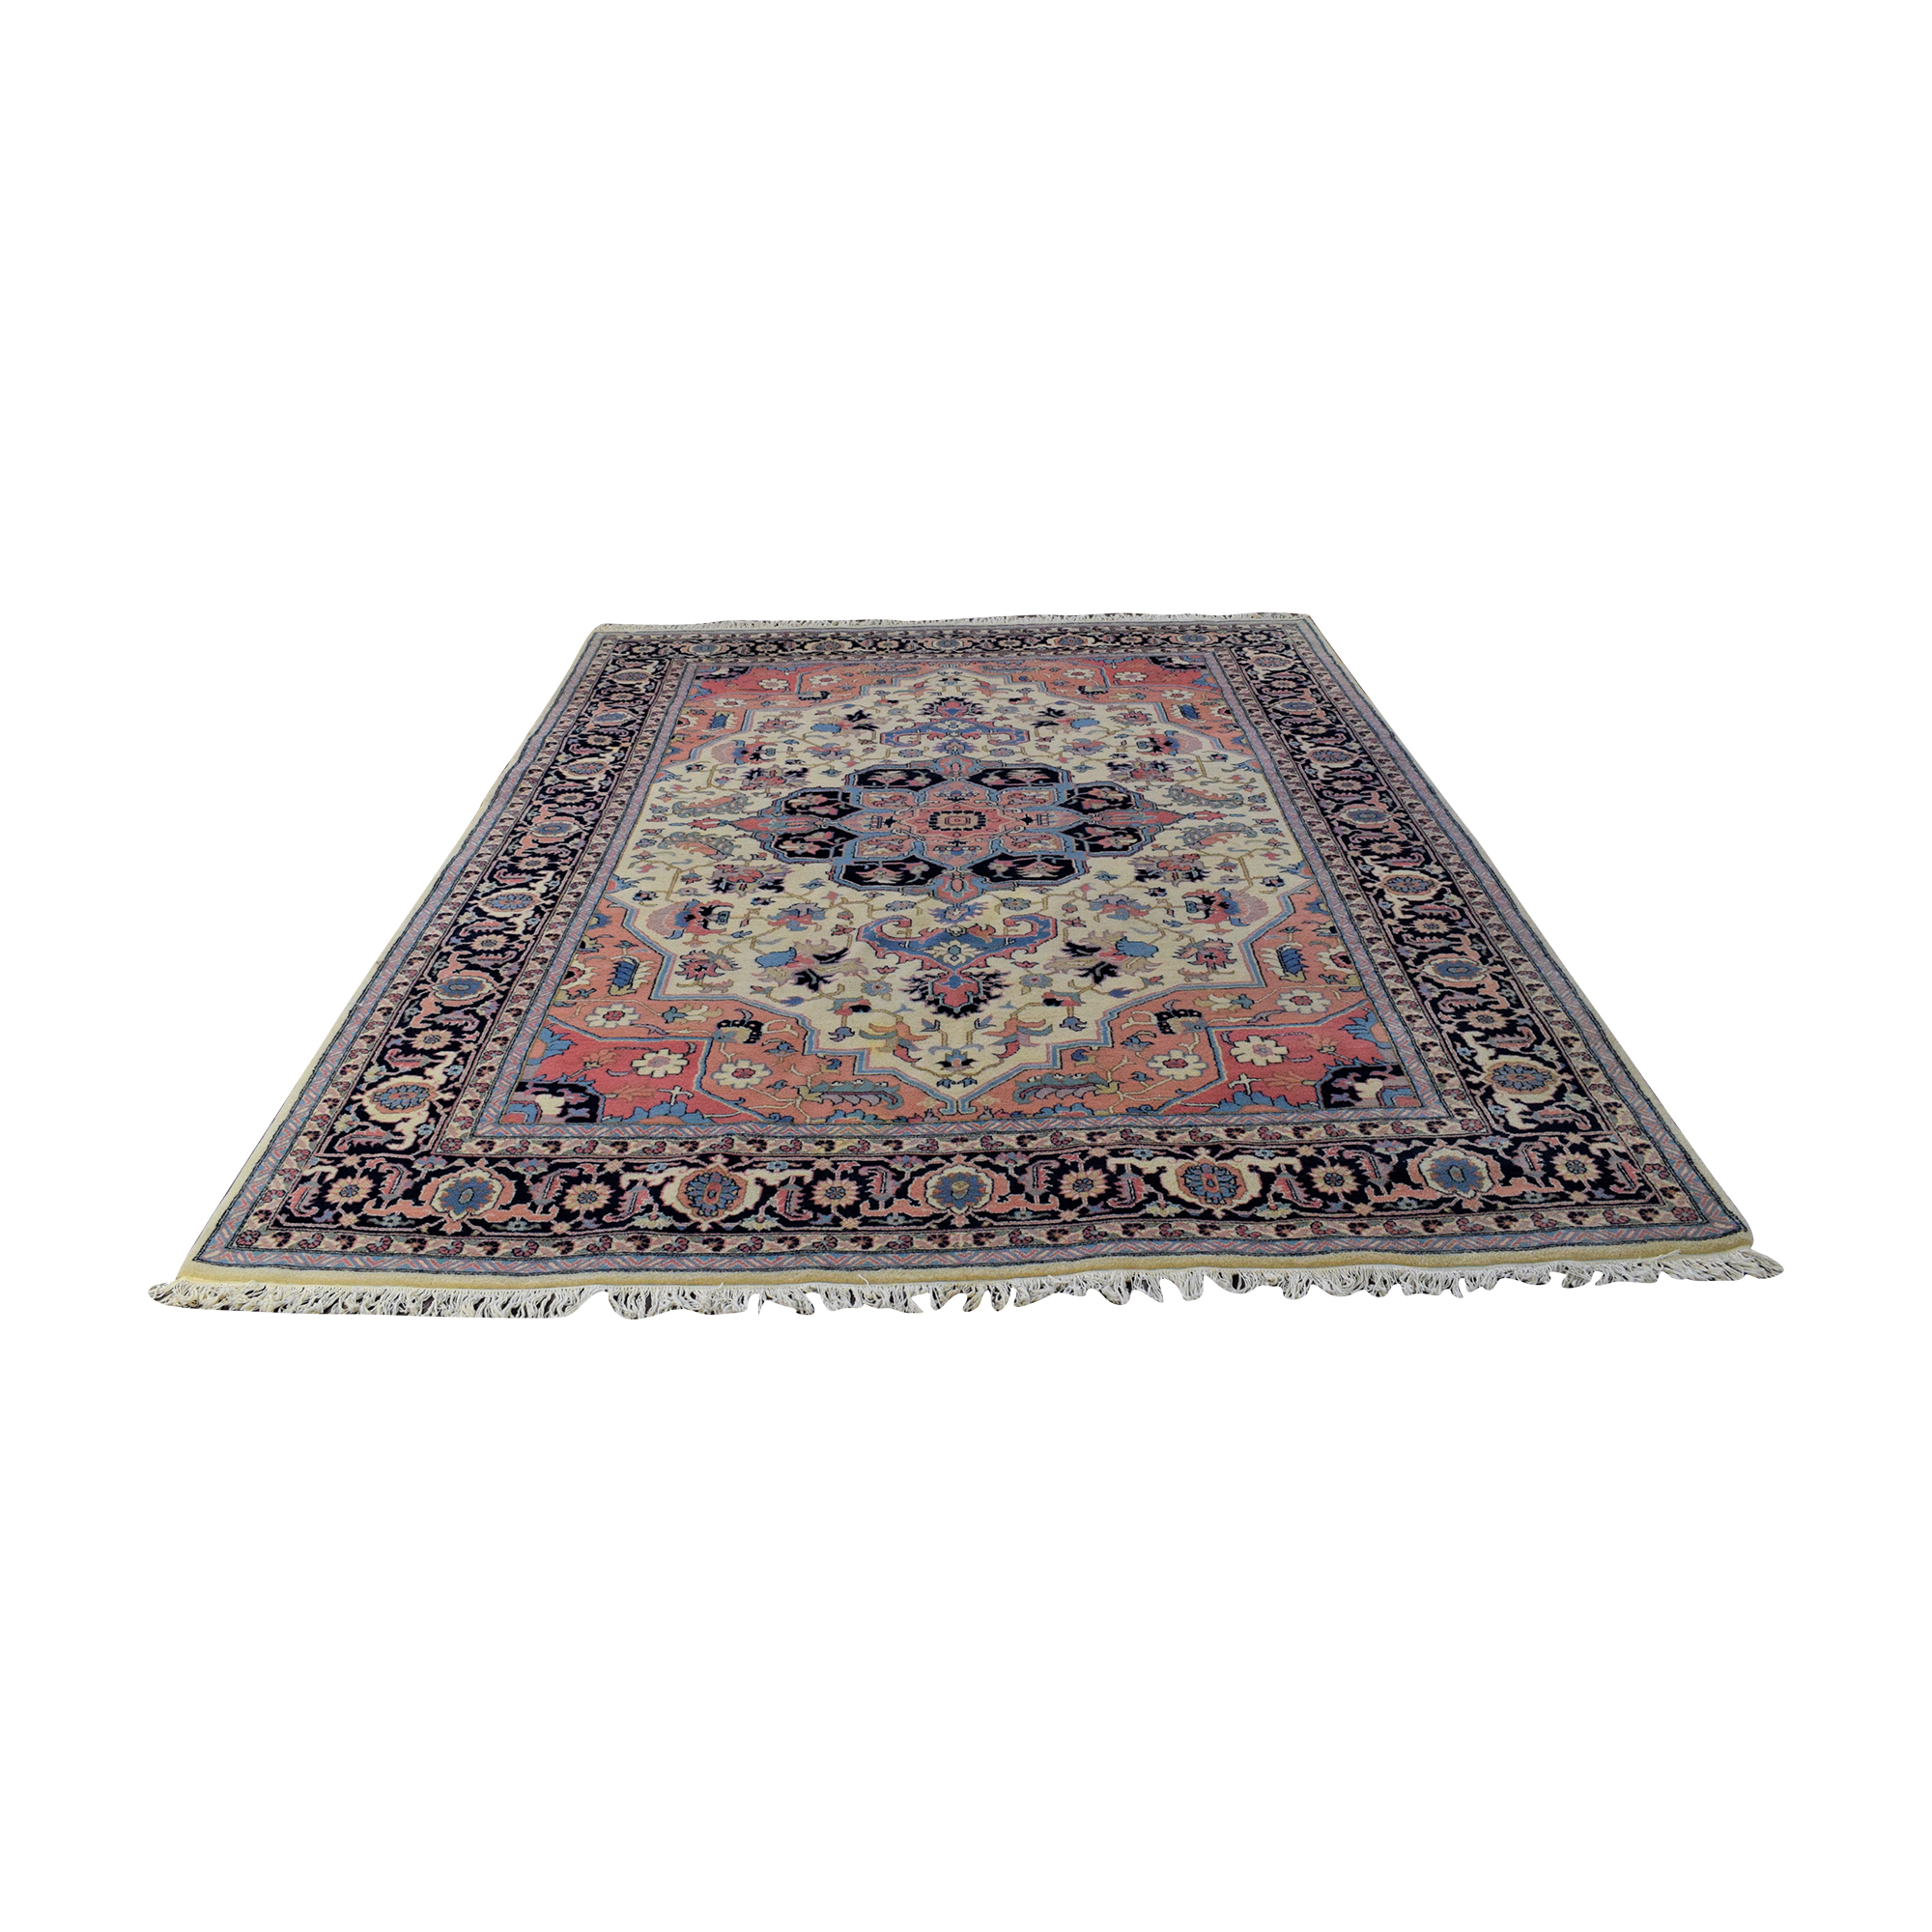 Persian Style Area Rug / Rugs